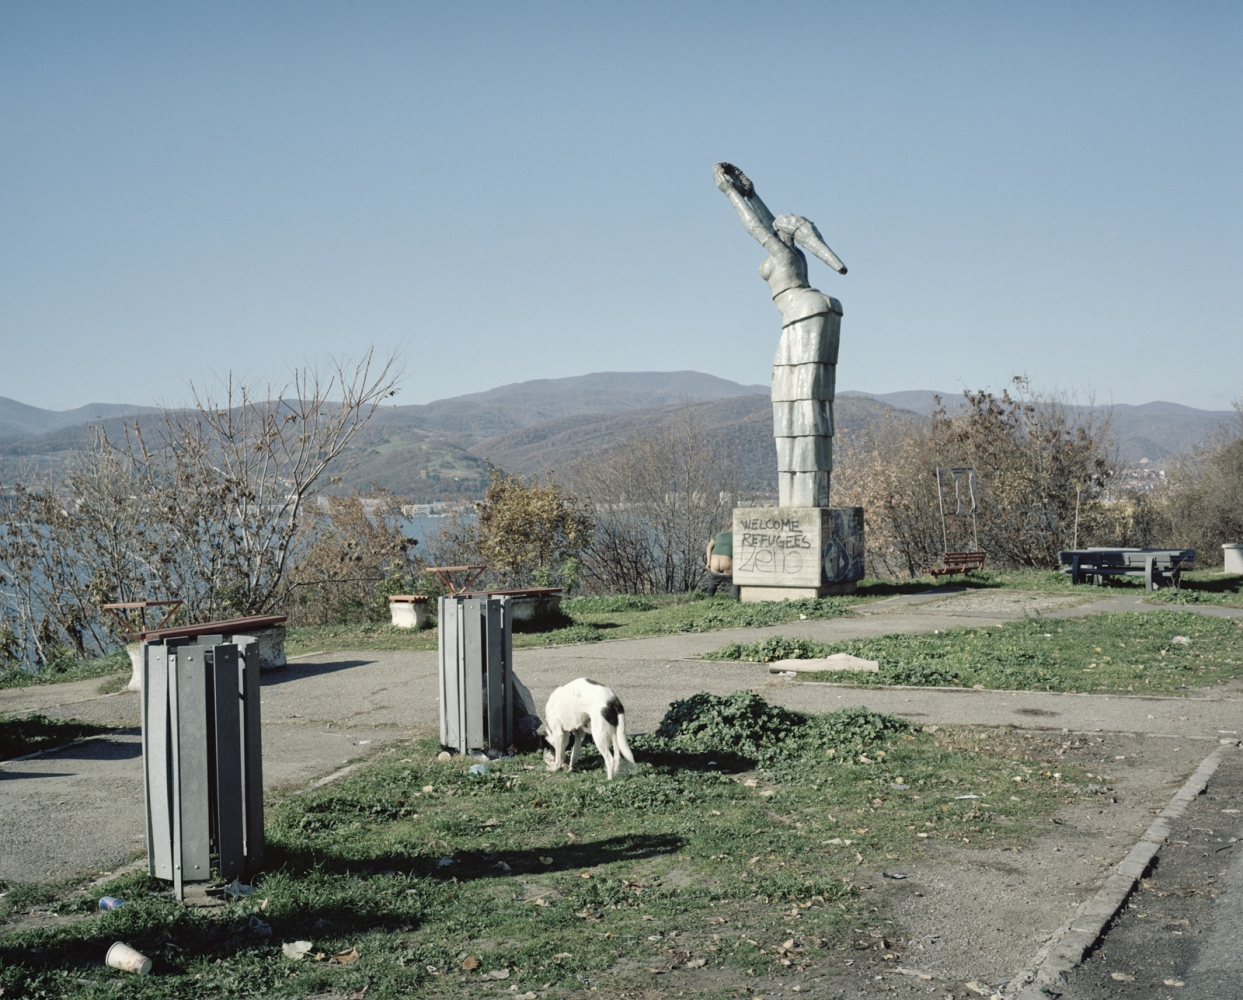 Romania, Orsova. A communist style monument with a wrote welcoming refugees.